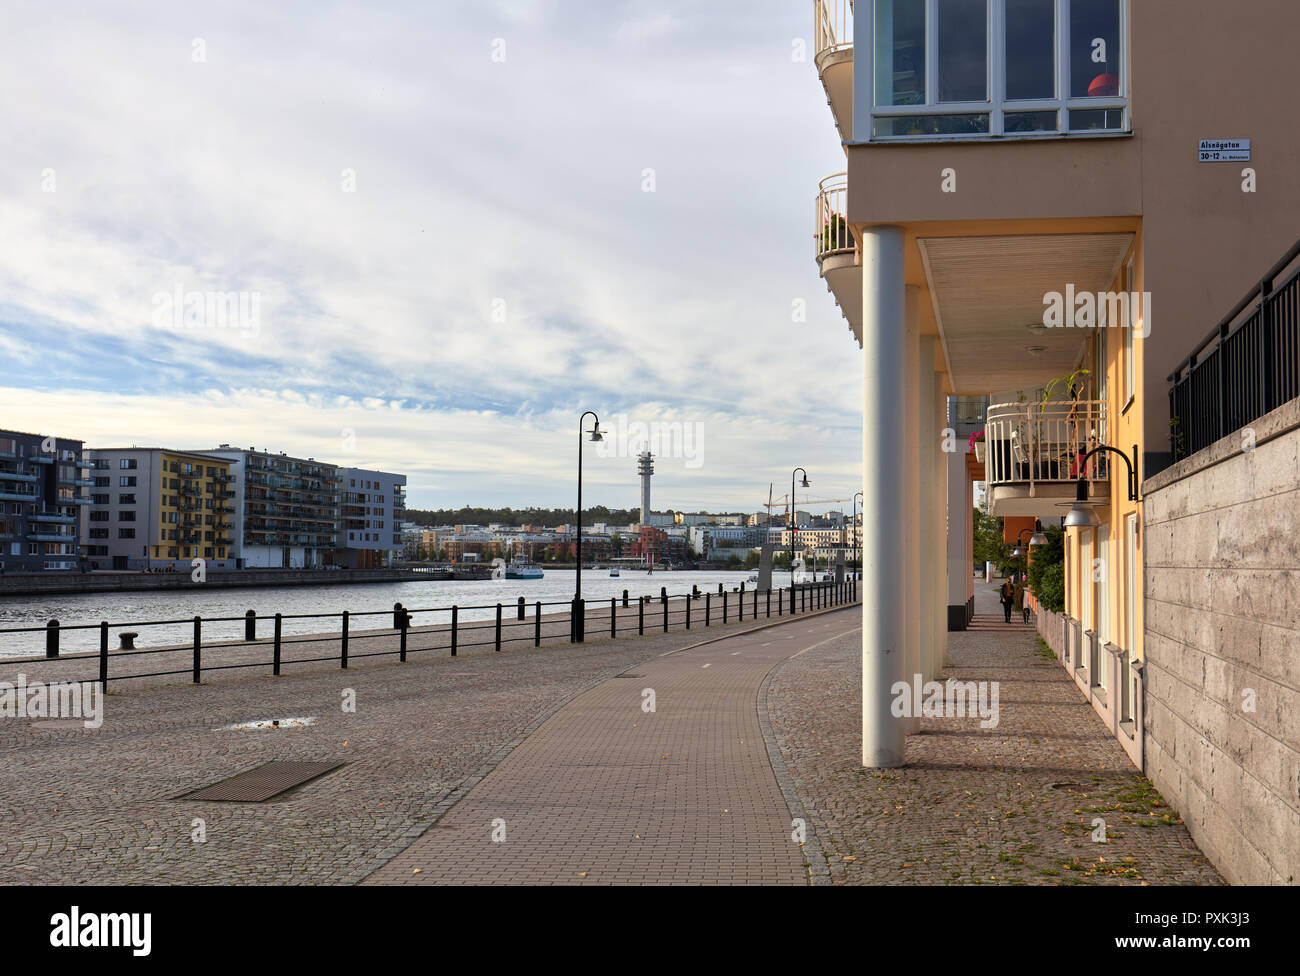 Morning view of a street along Hammarby sea in Södermalm, Stockholm, Sweden - Stock Image